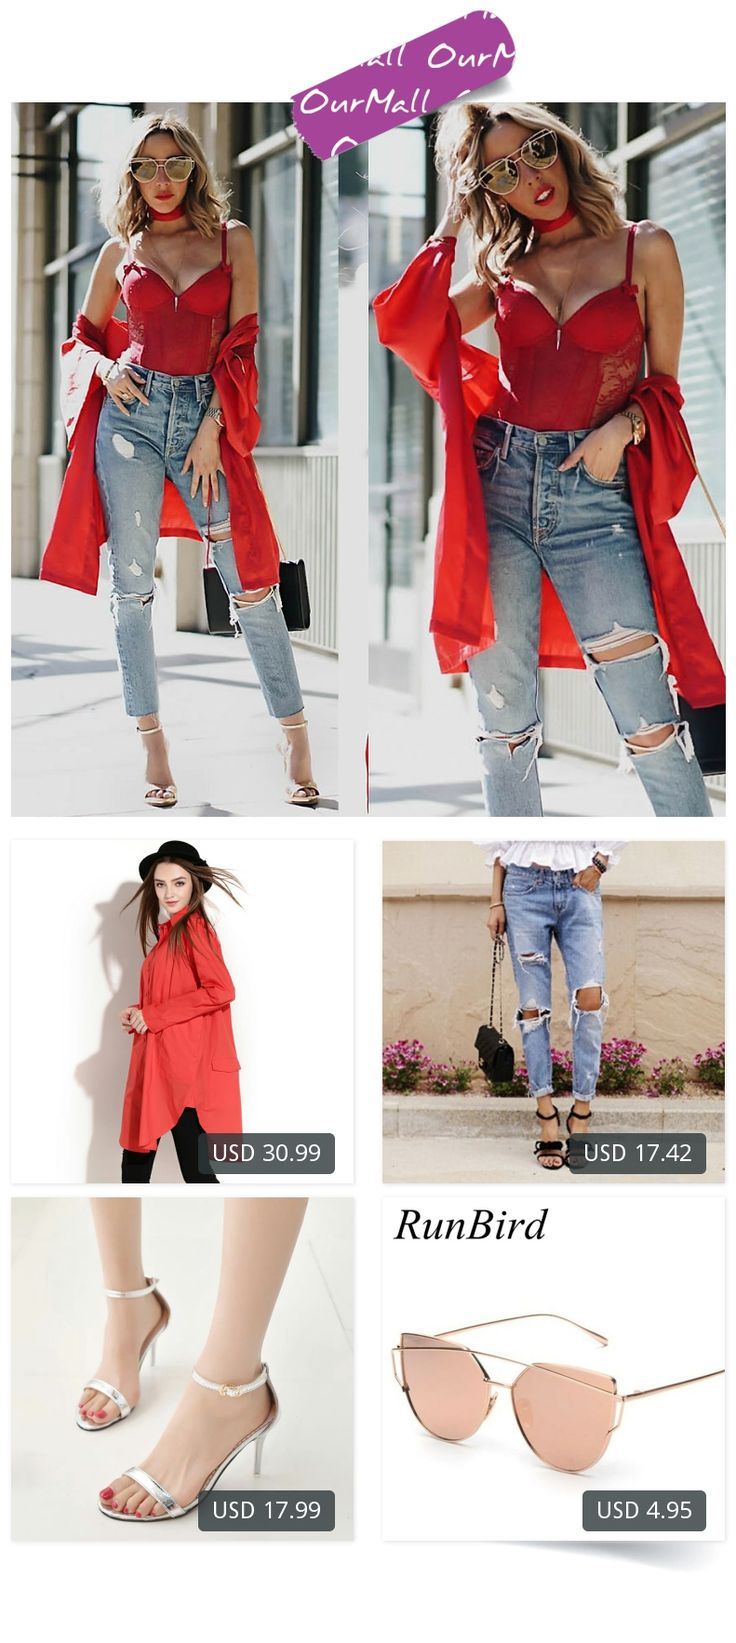 This is Maria De La Cruz's buyer show in OurMall;  1.2017 Spring Women Blouses Plus Size Women Clothing Pure Color Long-Sleeved Women Shirt 2. Casual Holes Ripped Jeans For Women Denim Blue Trousers Female Retro Denim Korean Style Pencil 3.Women Sandals White Wedding Shoes Open T... please click the picture for detail. http://ourmall.com/?Vnmeee   #cardigan #cardiganforwomen #femalecardigan #woolcardigan #cardiganmujer #cardigankimono #cardigan #cardiganvintage